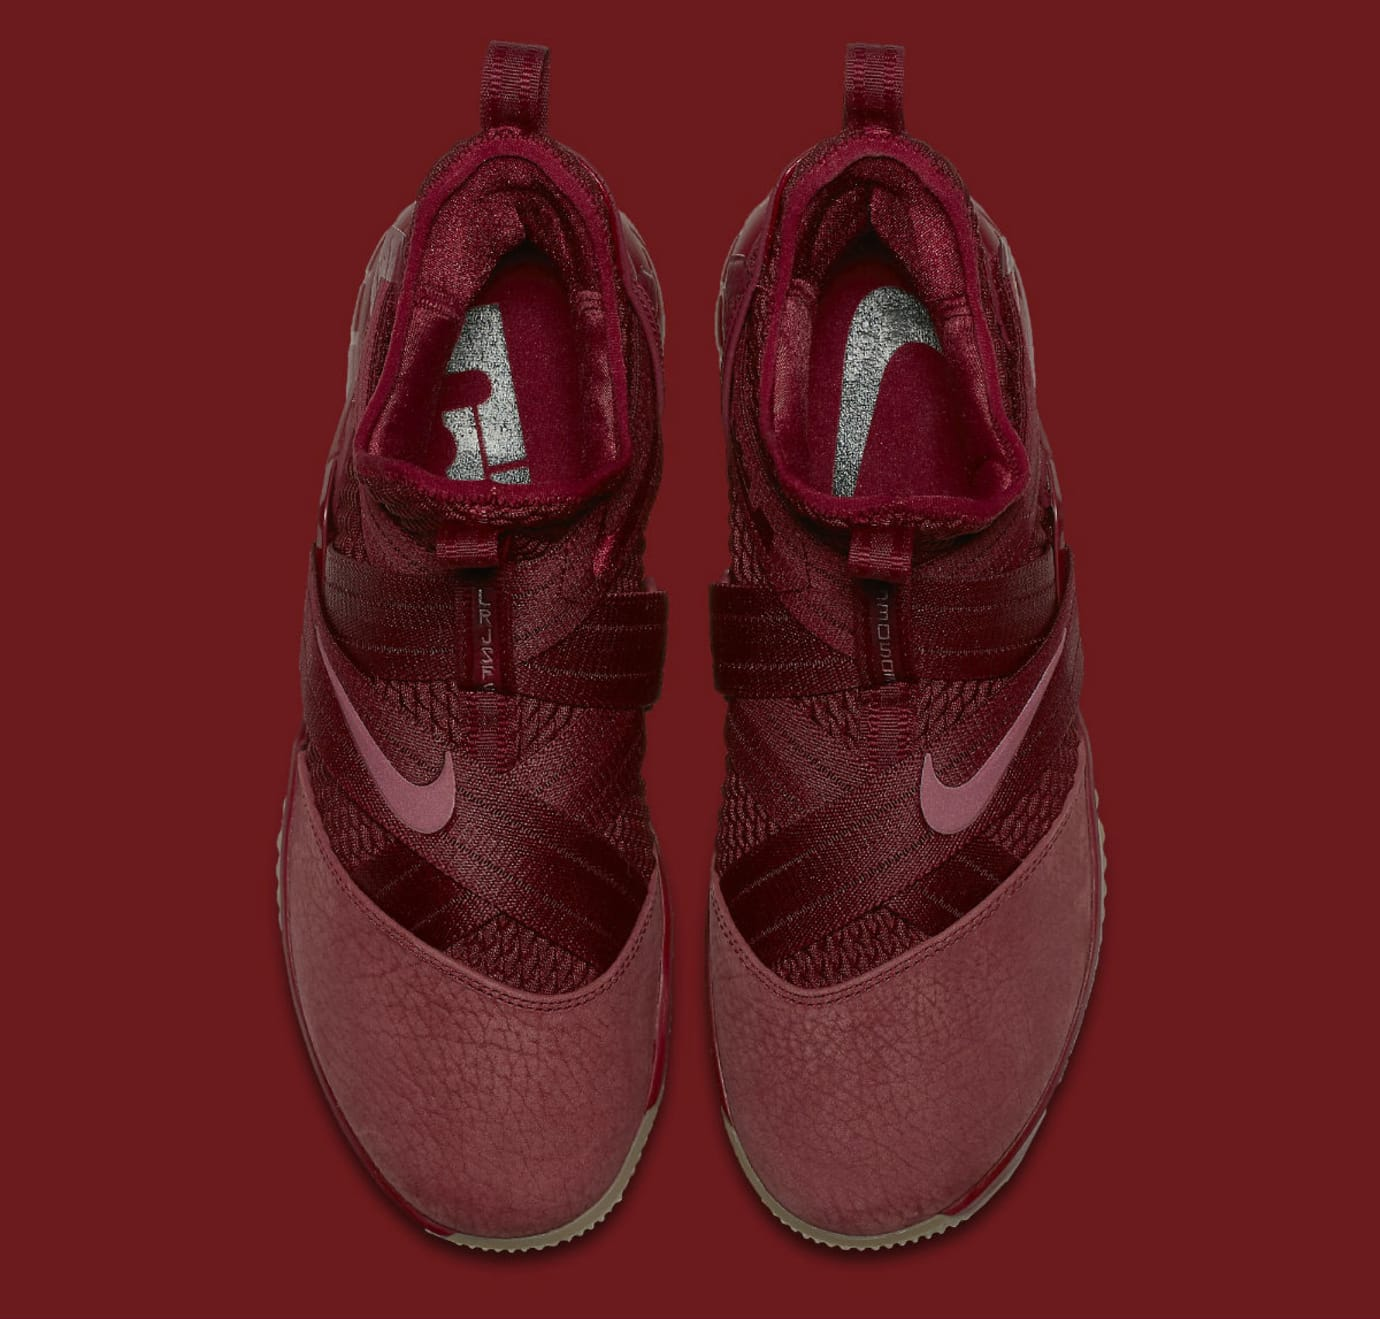 a4a7dade55d83 Image via Nike Nike LeBron Soldier 12 XII Team Red Cavs Release Date  AO4055-600 Top